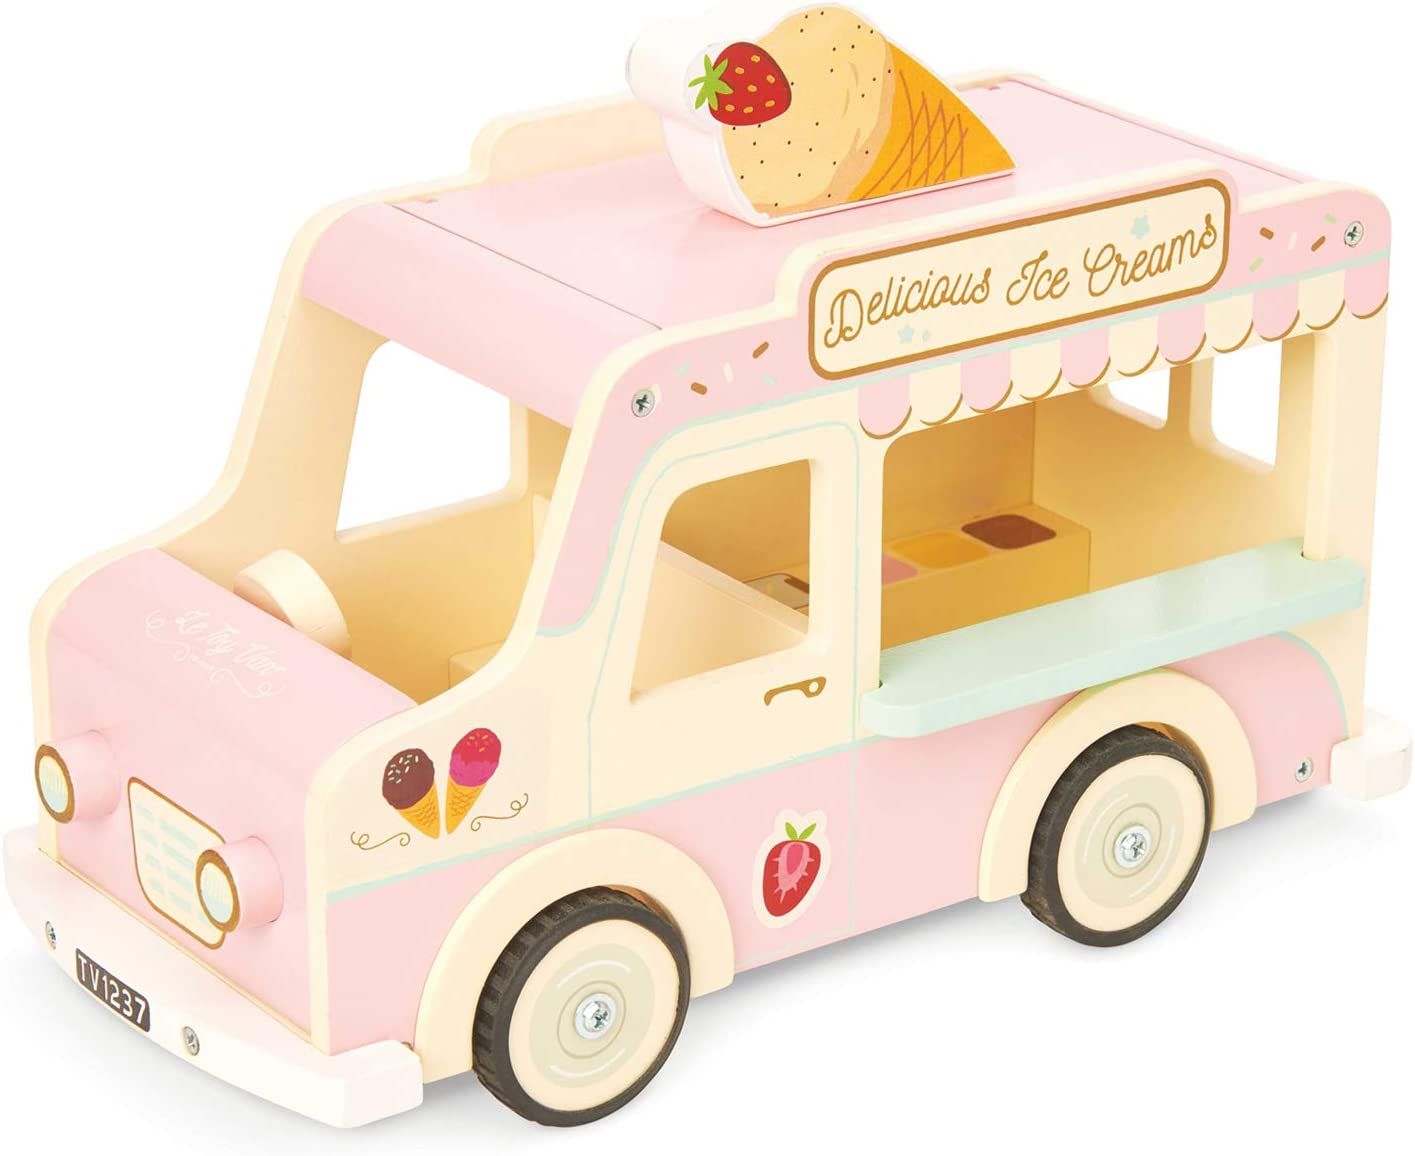 Le Toy Van Daisylane Collection Wooden Dolly Ice Cream Truck Premium Wooden Toys for Kids Ages 3 Years & Up